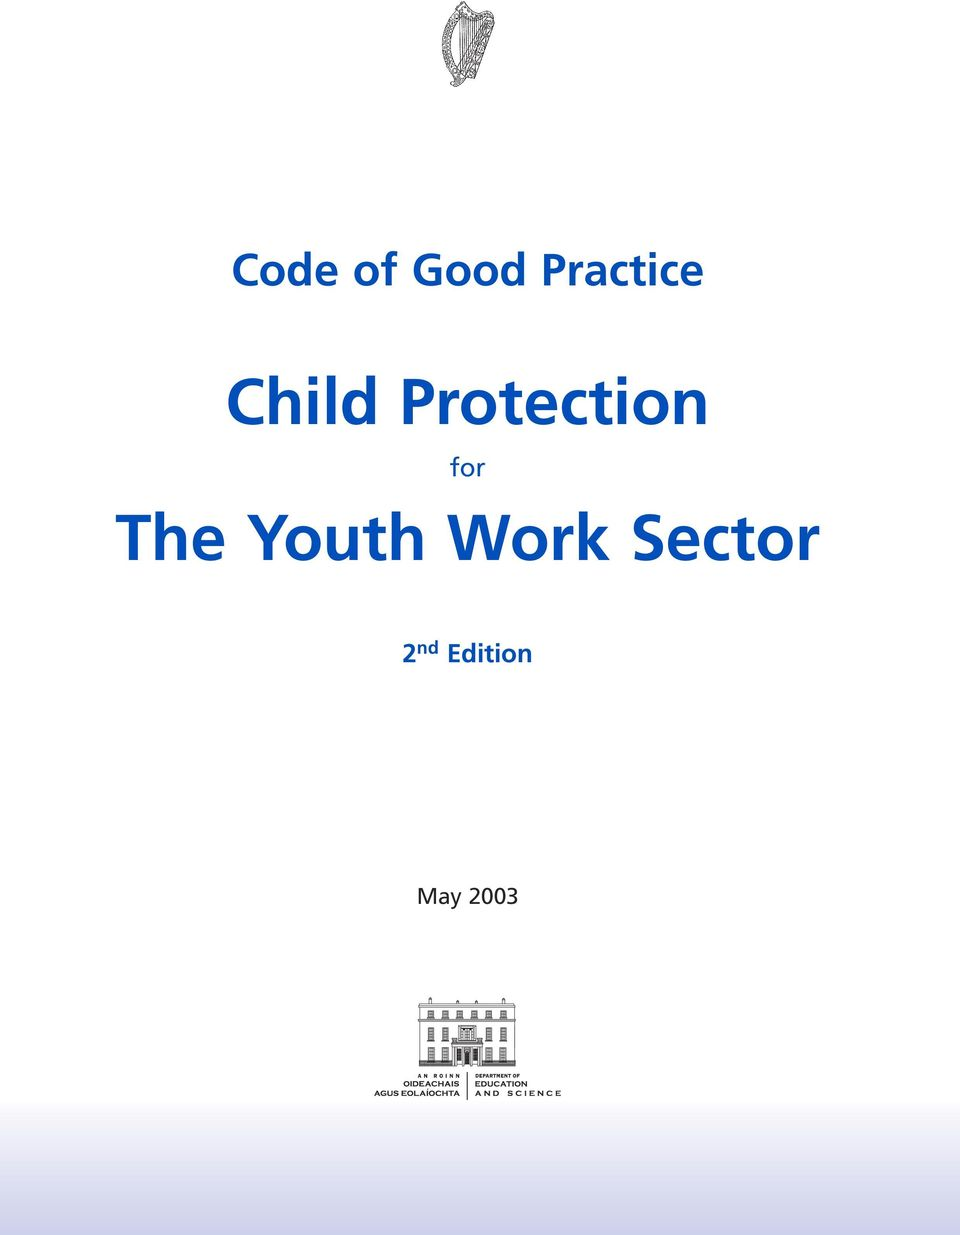 The Youth Work Sector